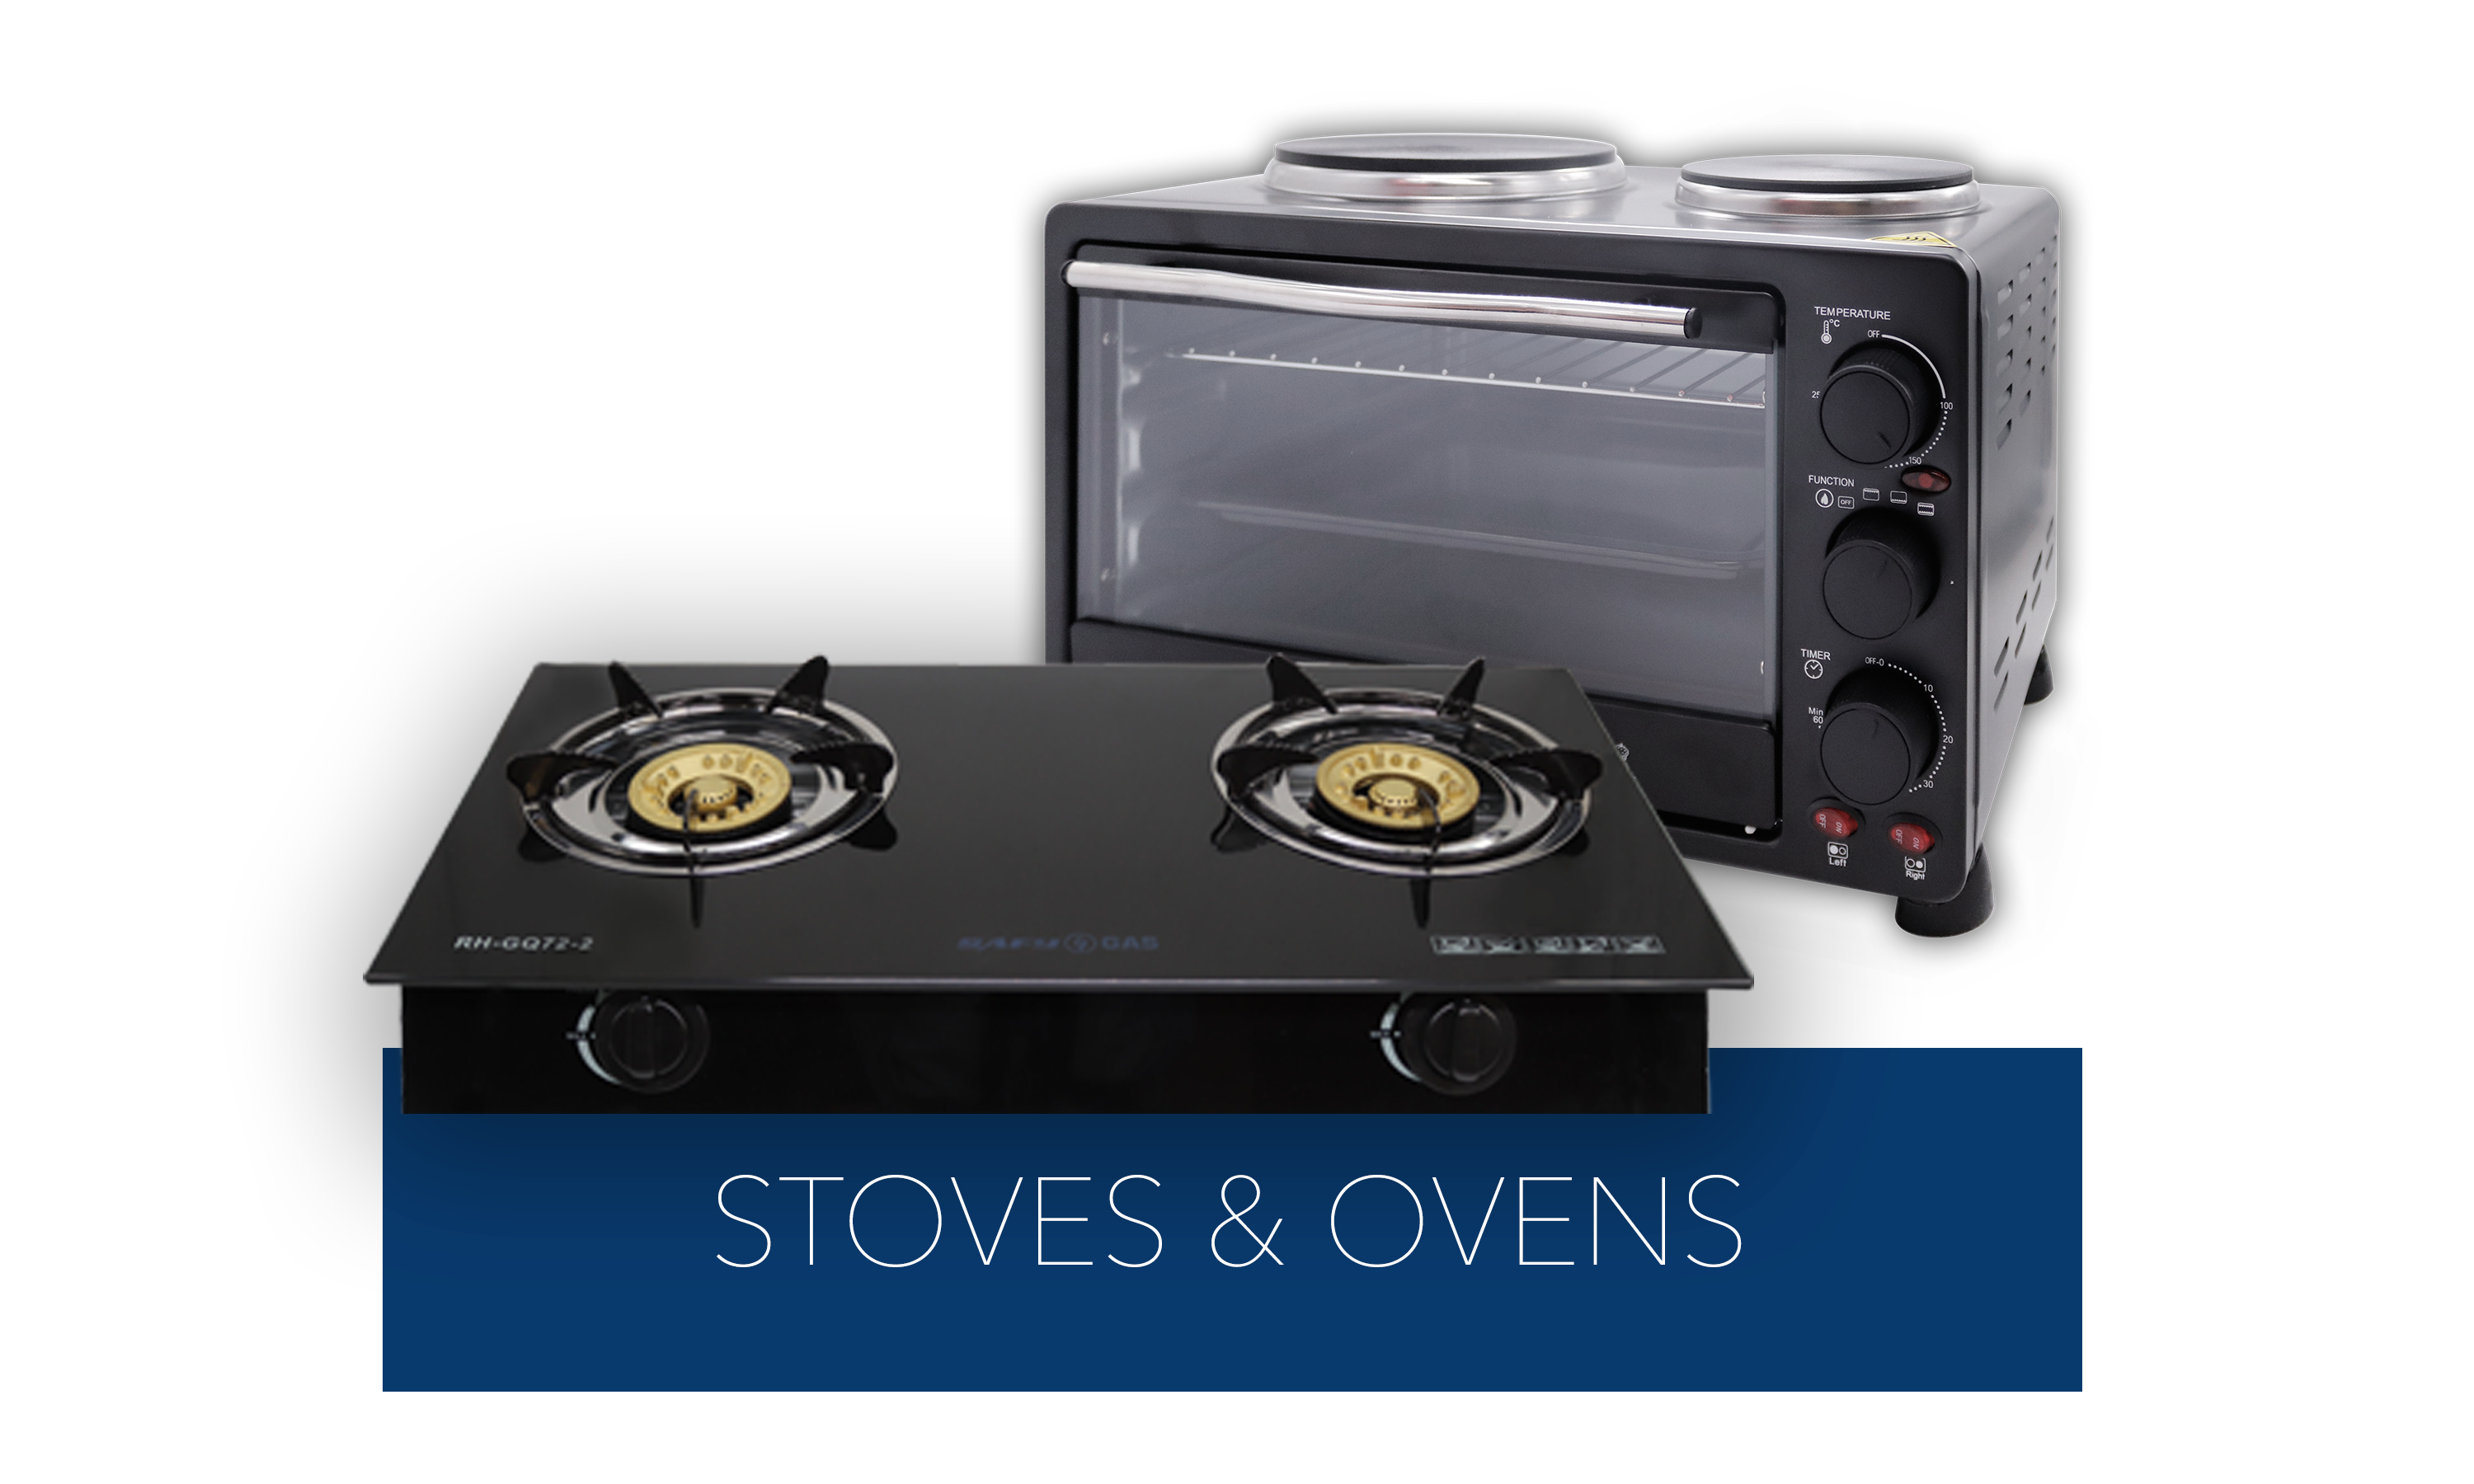 (STOVES & OVENS) Button